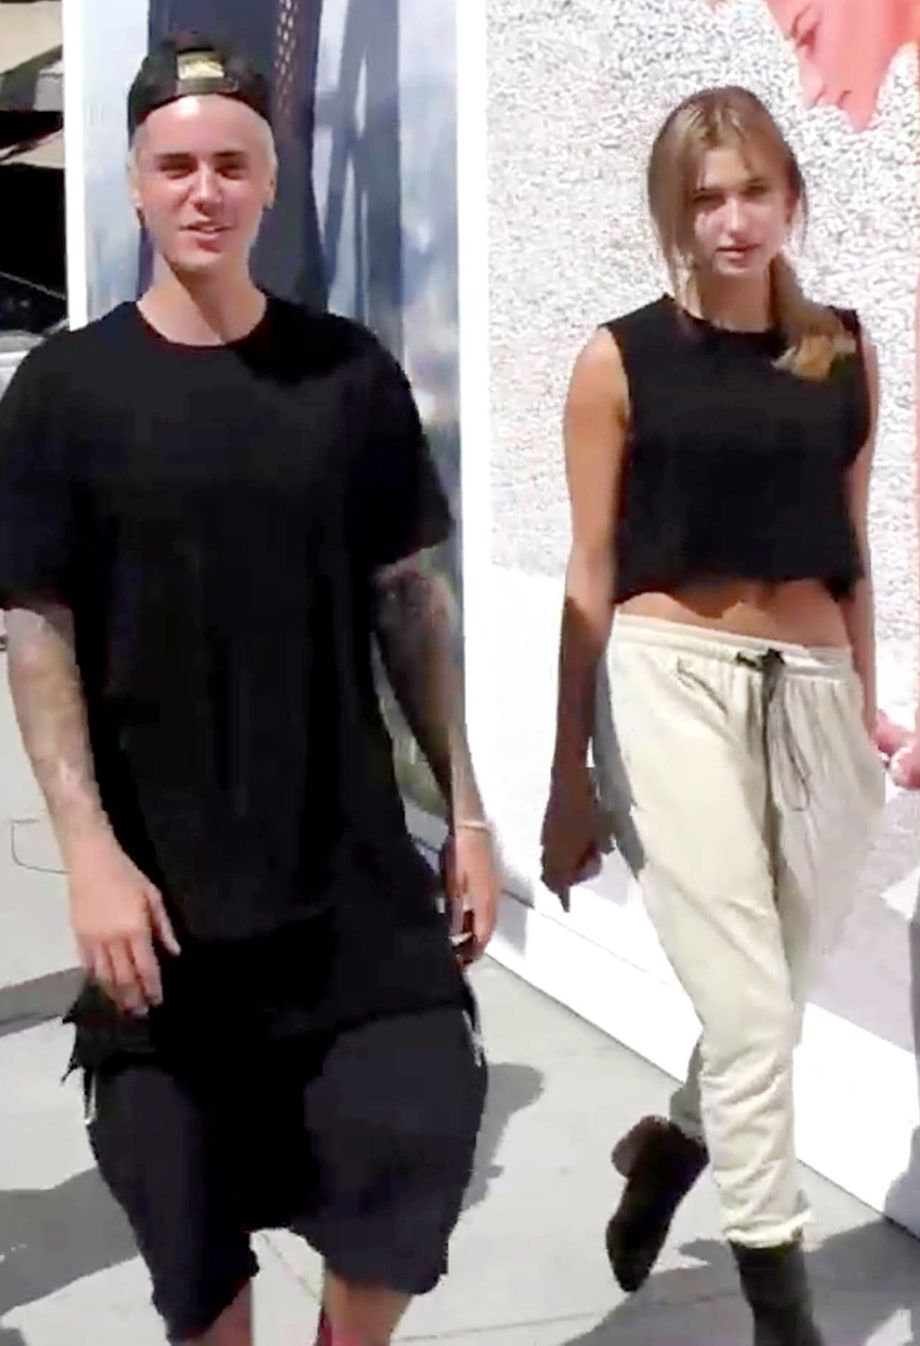 http://thenewswise.com/2016/02/18/justin-bieber-he-wants-to-get ...